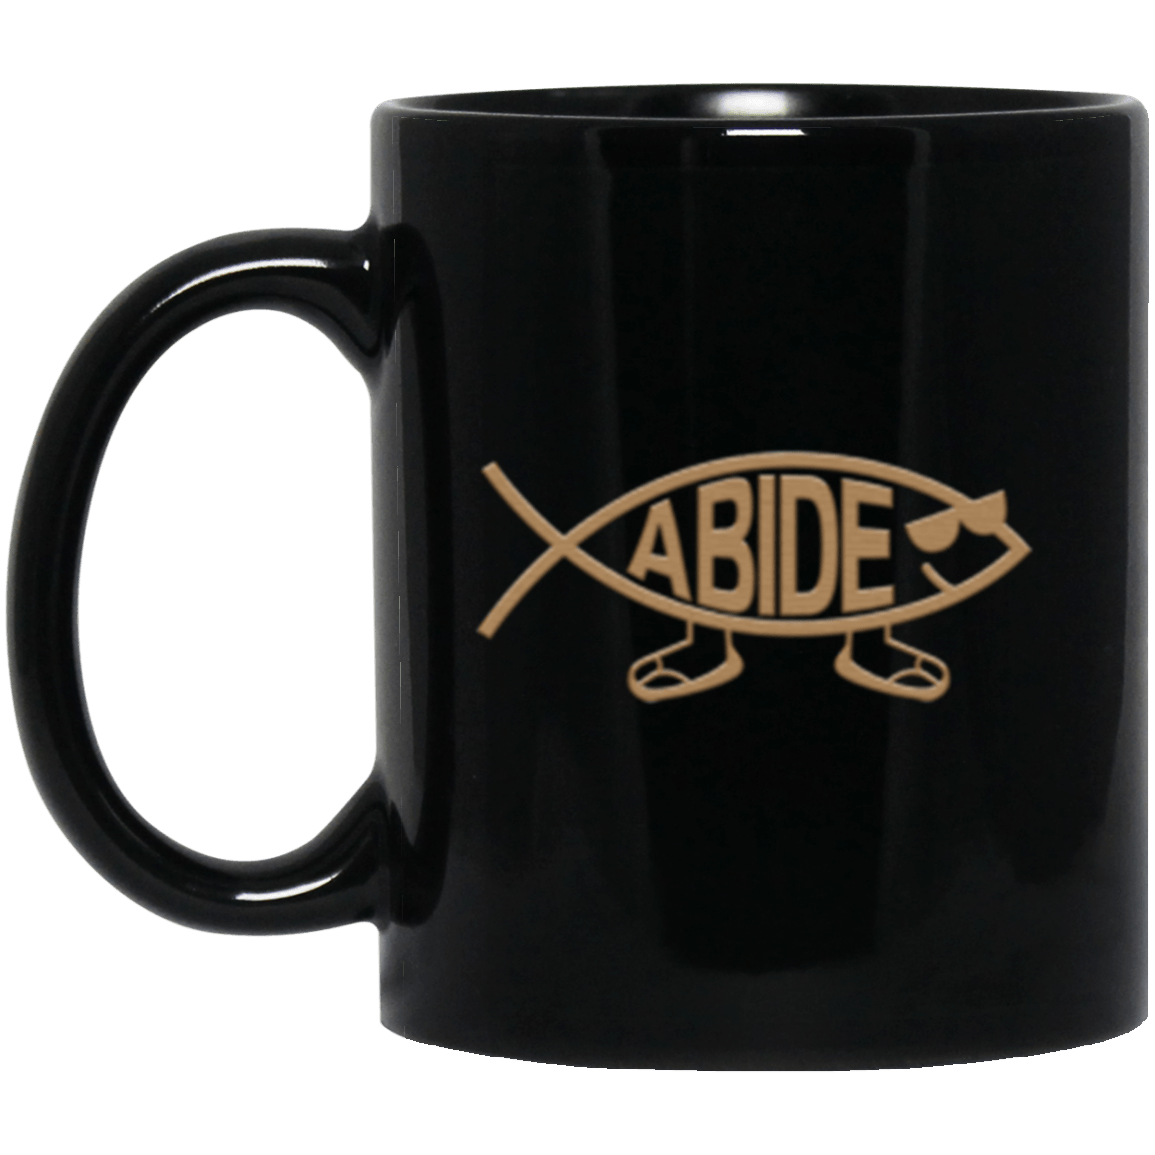 Abide Fish Black Mug 11oz (2-sided)